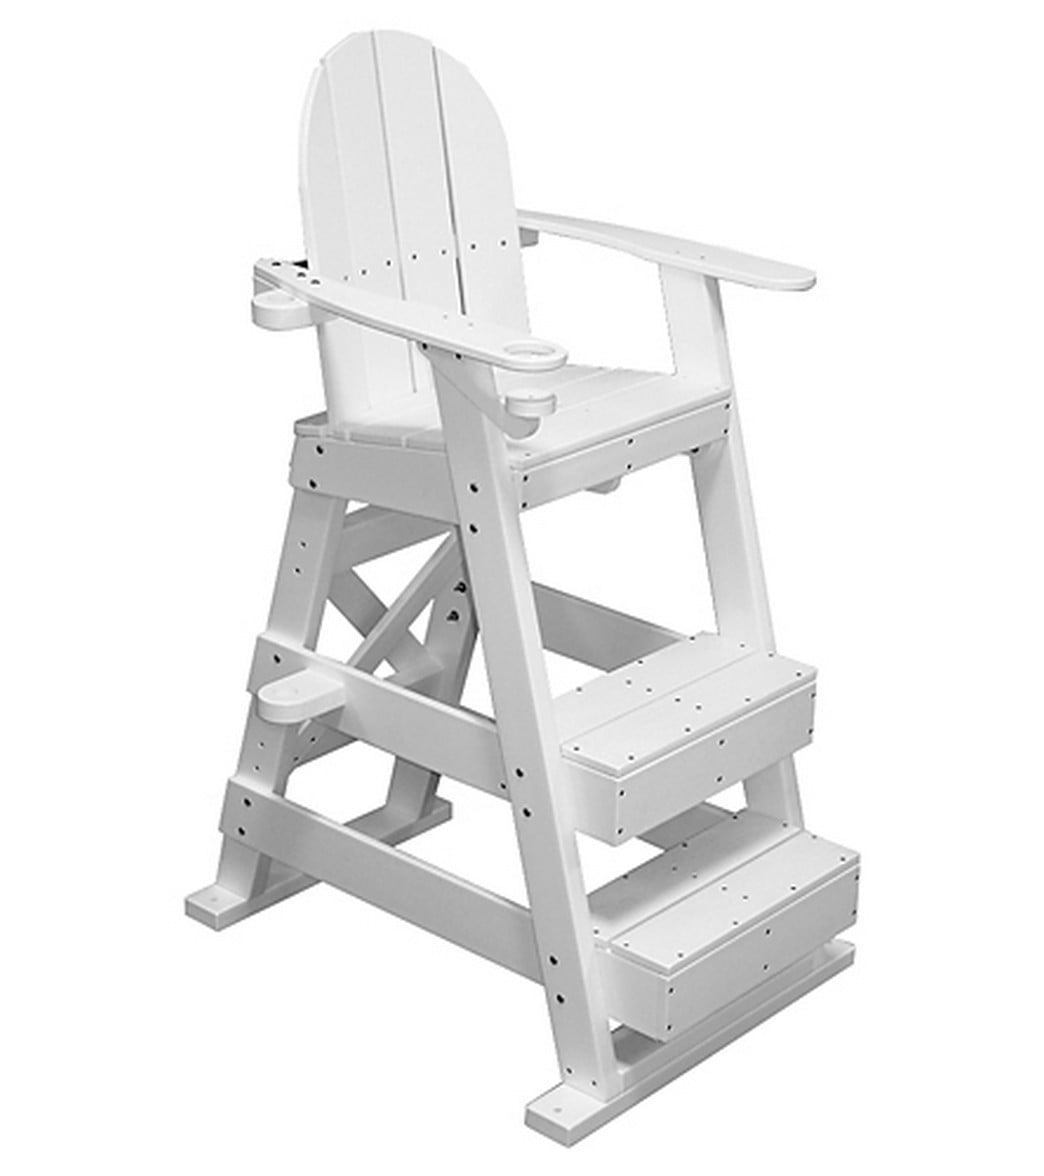 Tailwind Recycled Plastic Lifeguard Chair W/2 Steps At SwimOutlet.com    Free Shipping